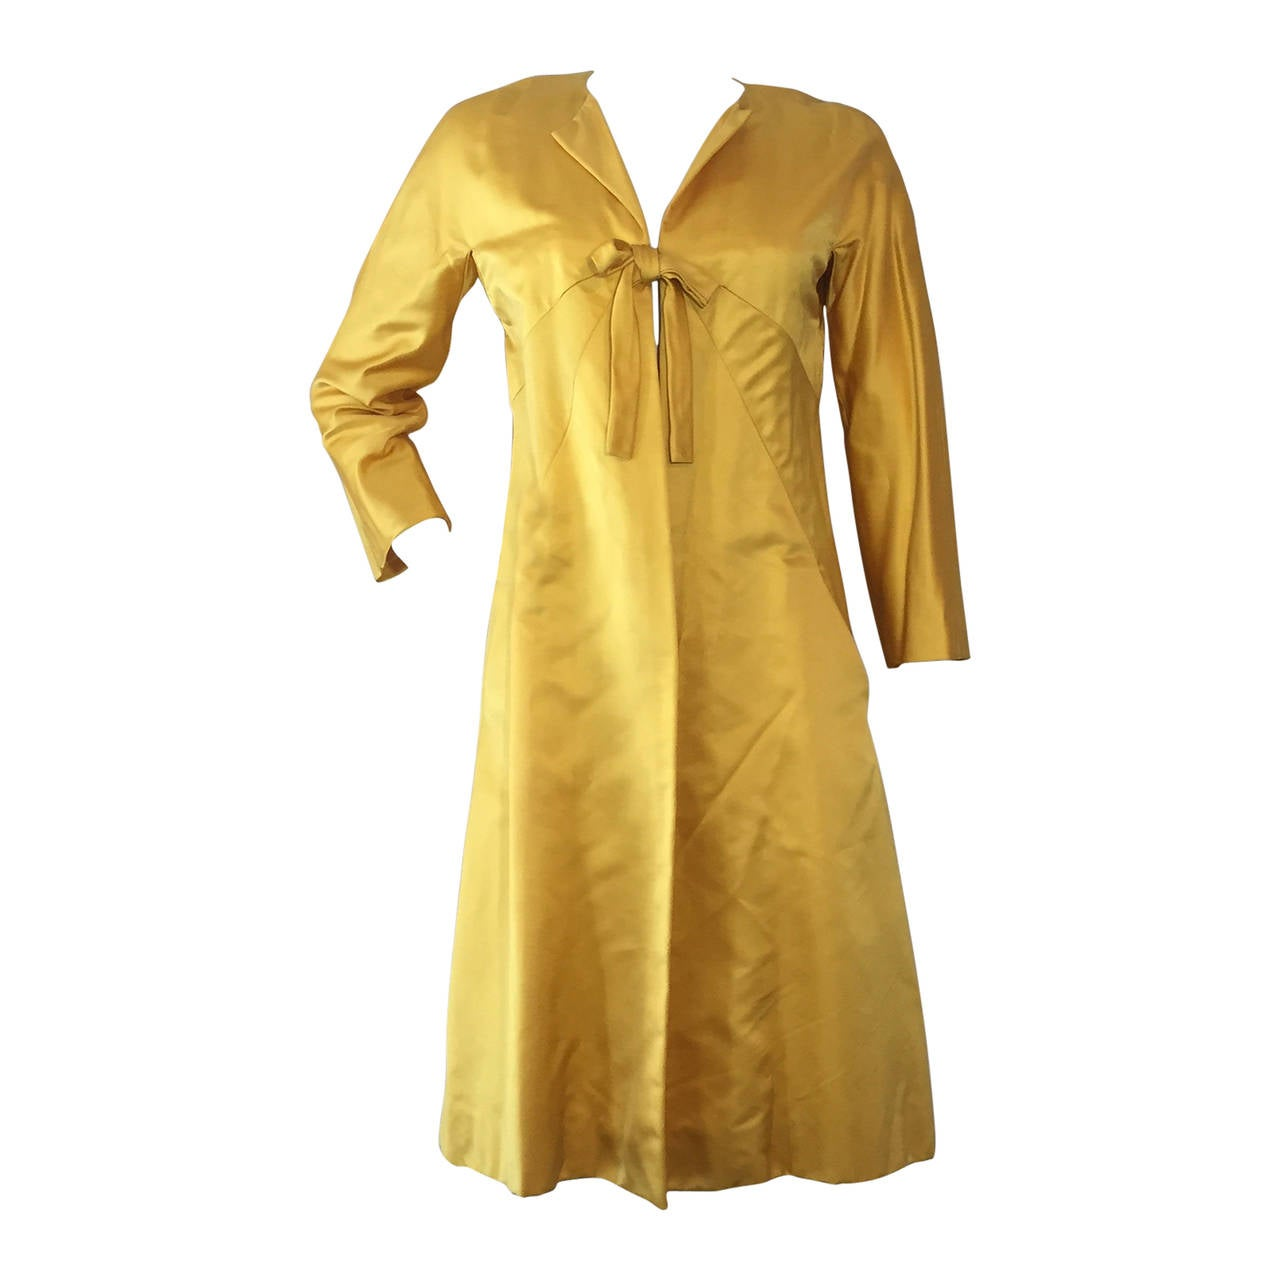 1960s Canary Yellow Silk Evening Coat with Sunburst Seaming 1